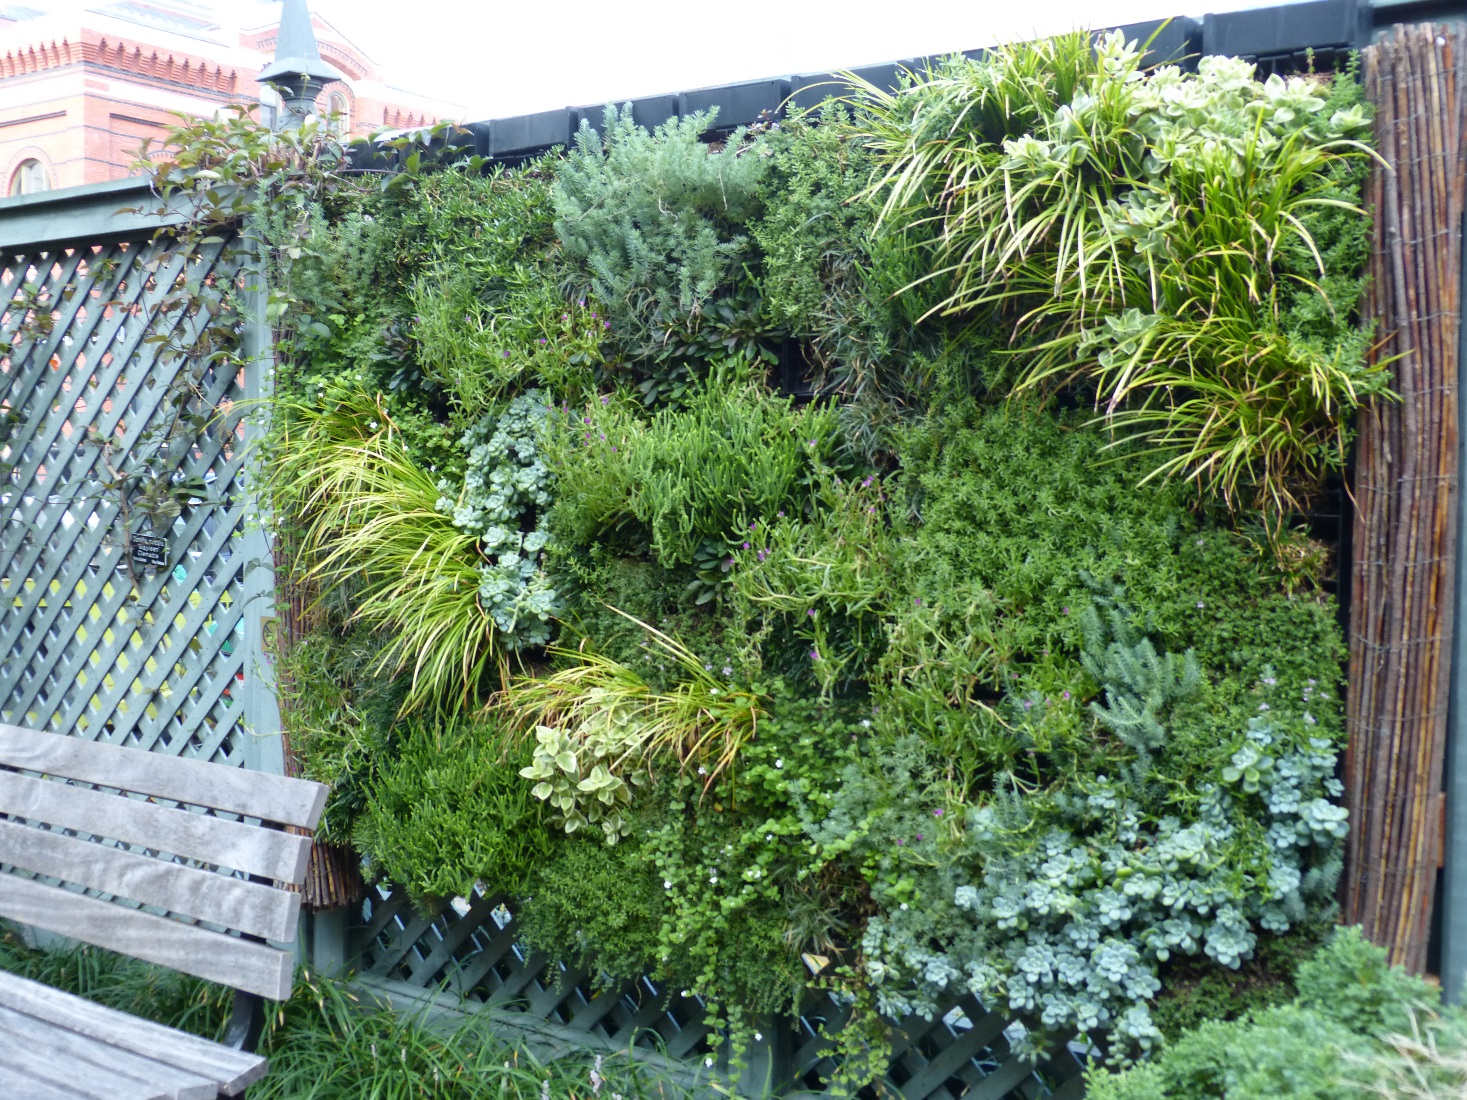 The 2014 Ripley Garden Green Wall. My First Attempt At Growing Vertically  In The Garden